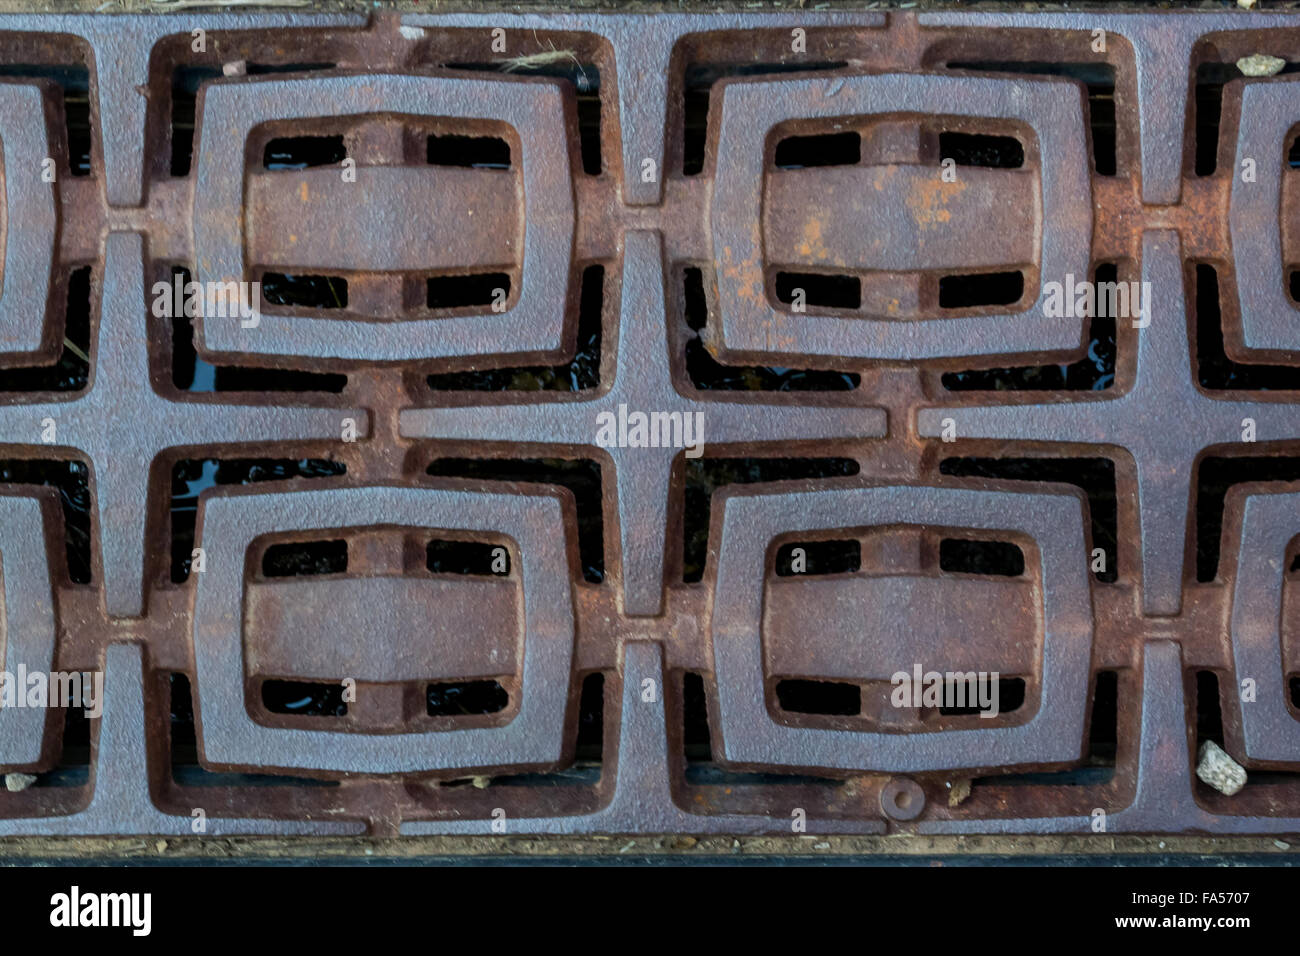 Decorative Metal Grates A Series Of Rectangles Appear As Buckles In A Decorative Metal